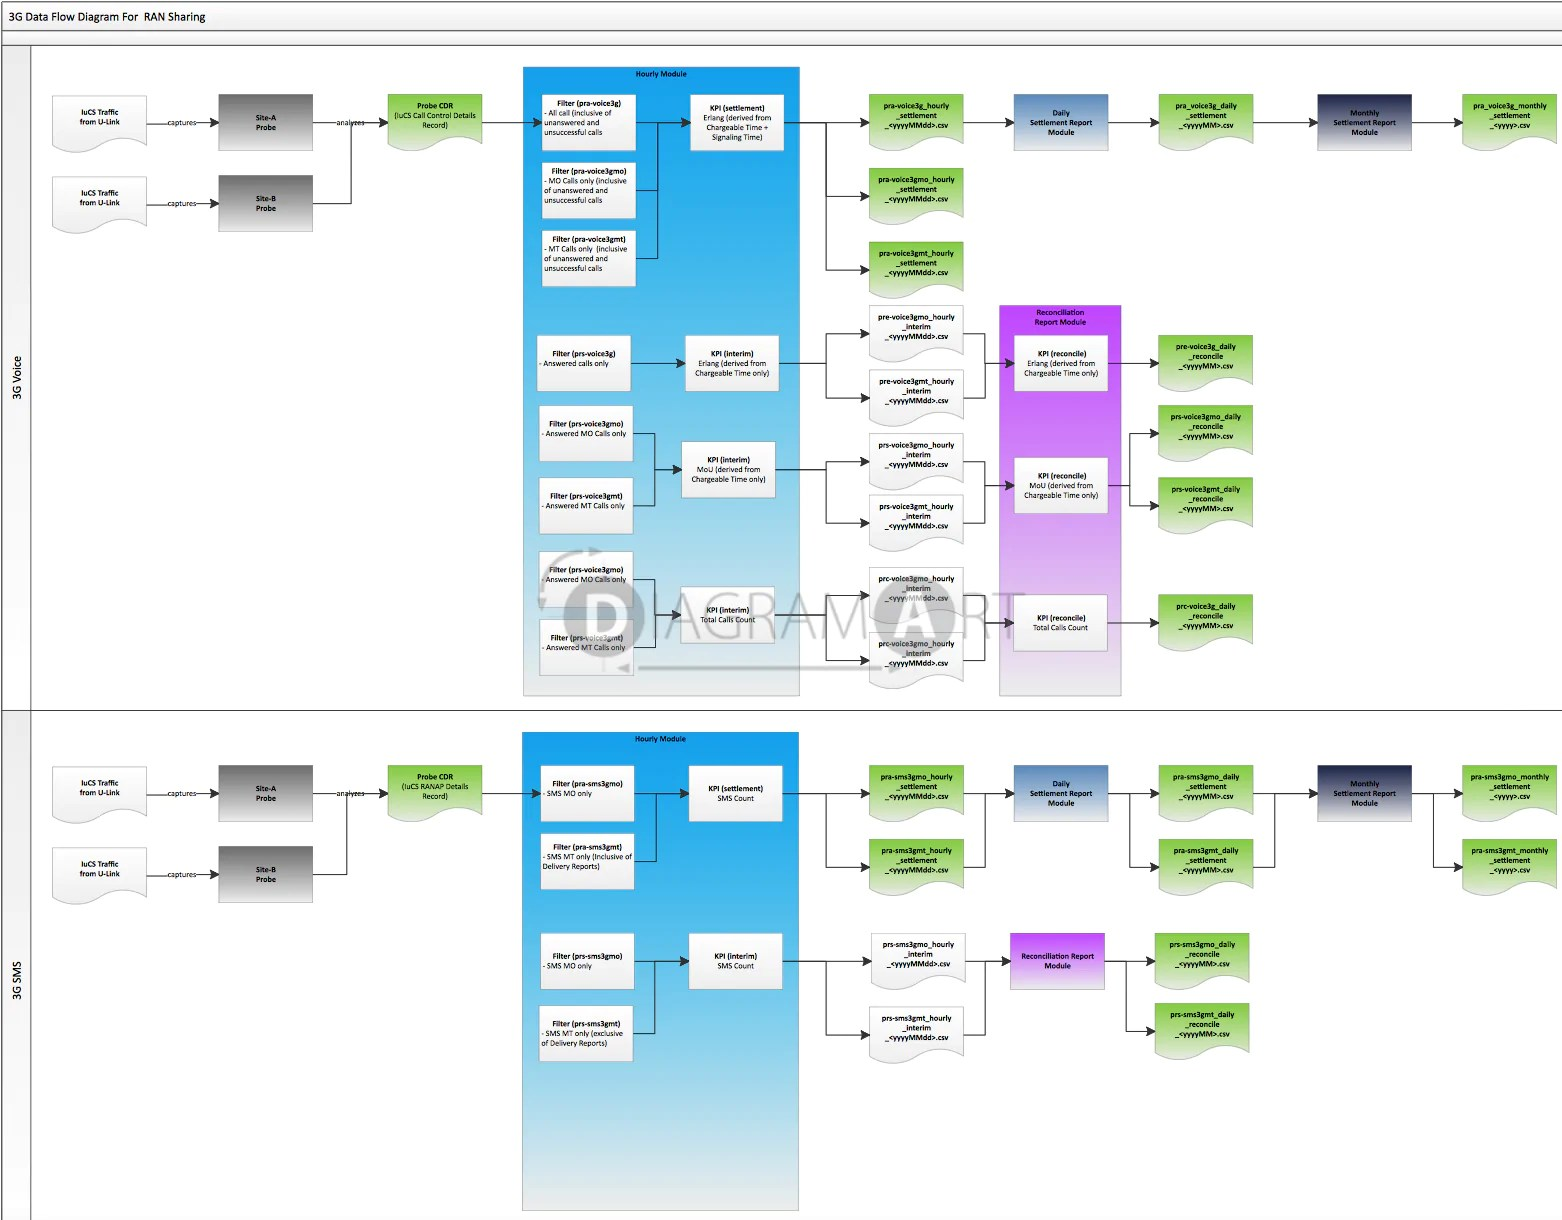 data flow diagram for supermarket system 2000 bmw 528i fuse ran sharing 3g royalty free